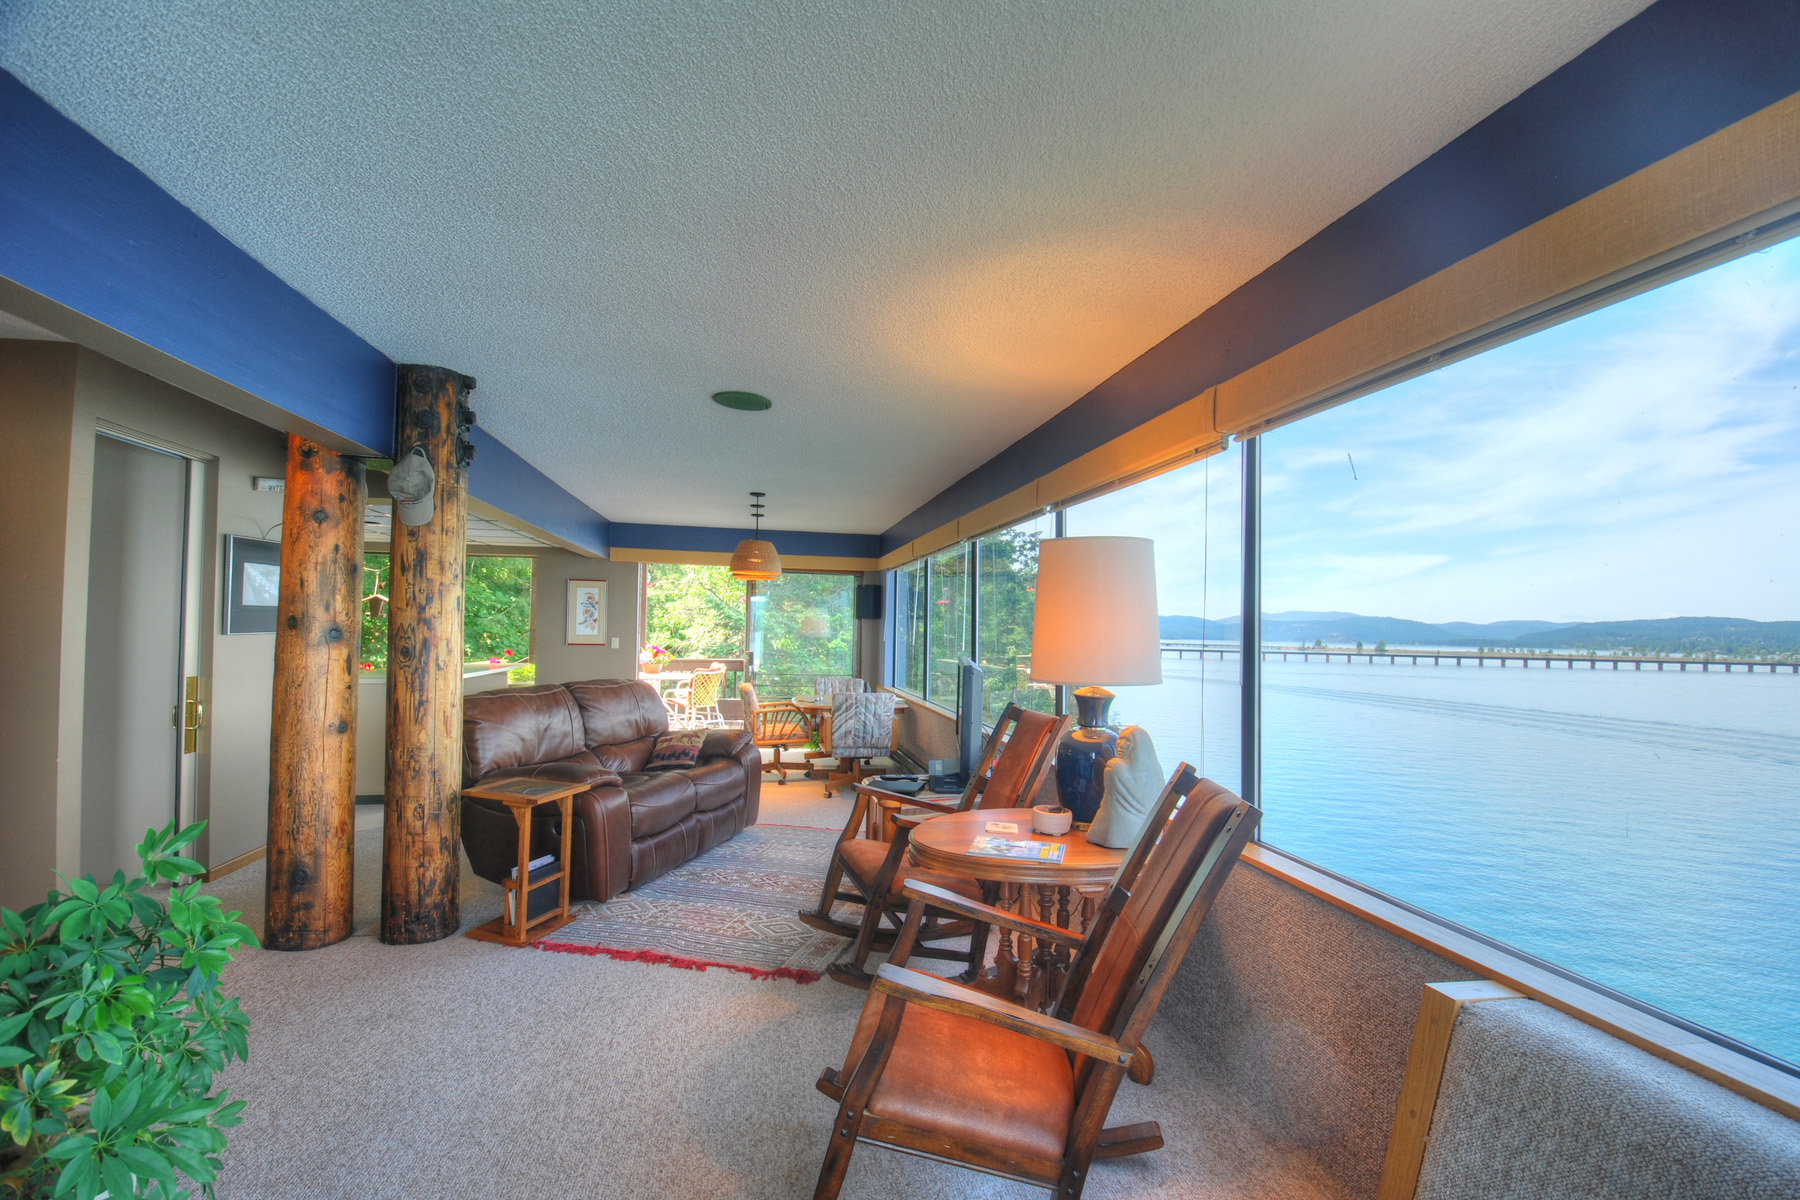 Single Family Home for Sale at Iconic Waterfront Home 3079 Bottle Bay Road Sagle, Idaho 83860 United States